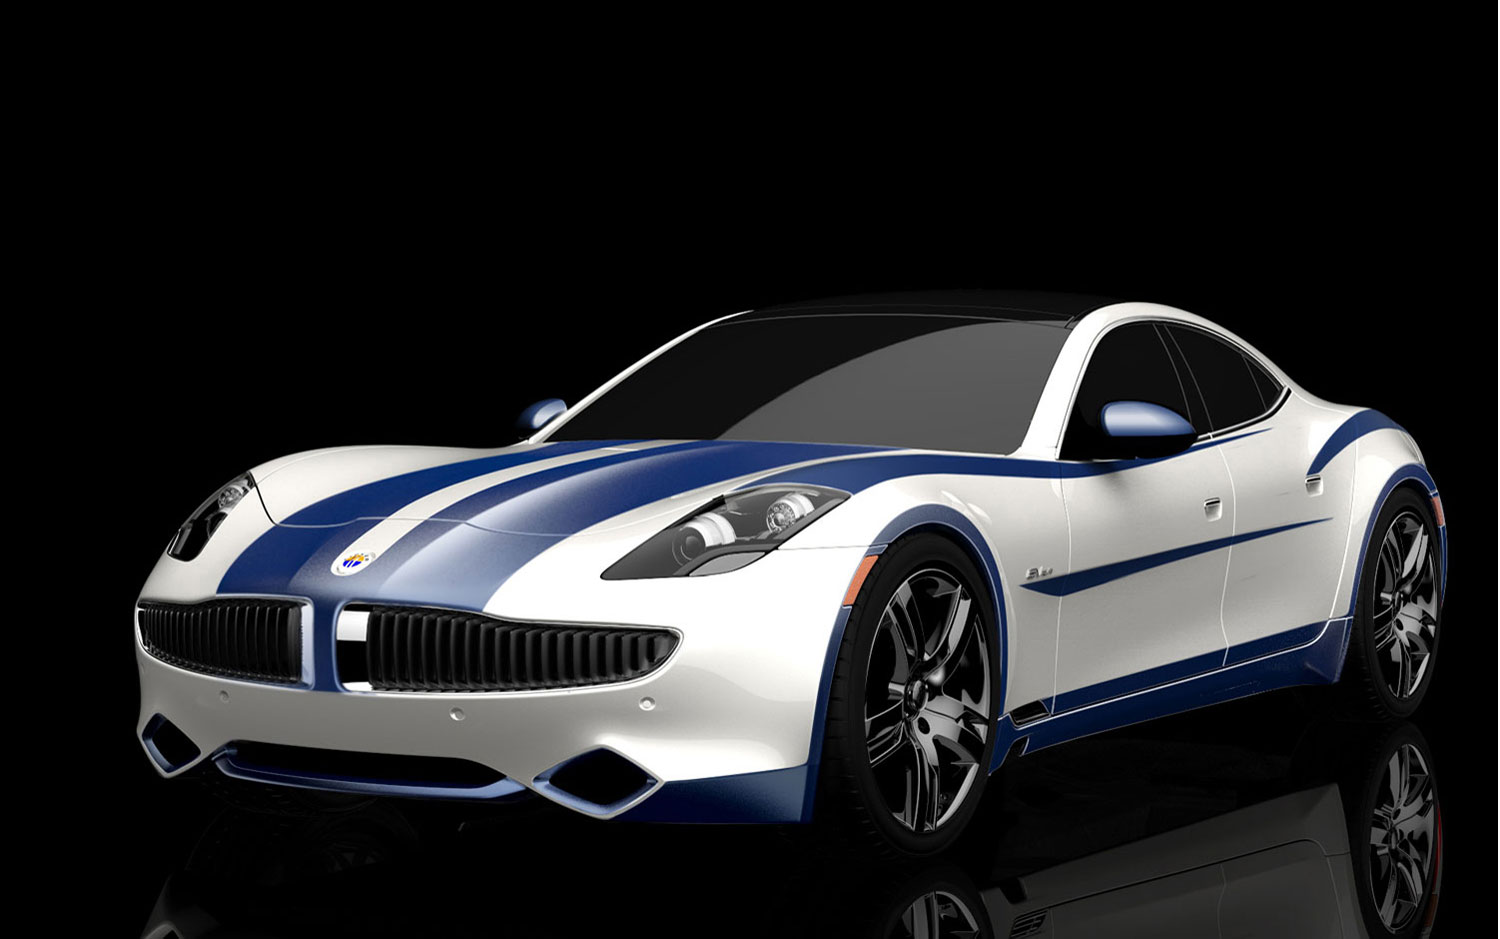 cars model 2013 2014 concept fisker karma. Black Bedroom Furniture Sets. Home Design Ideas